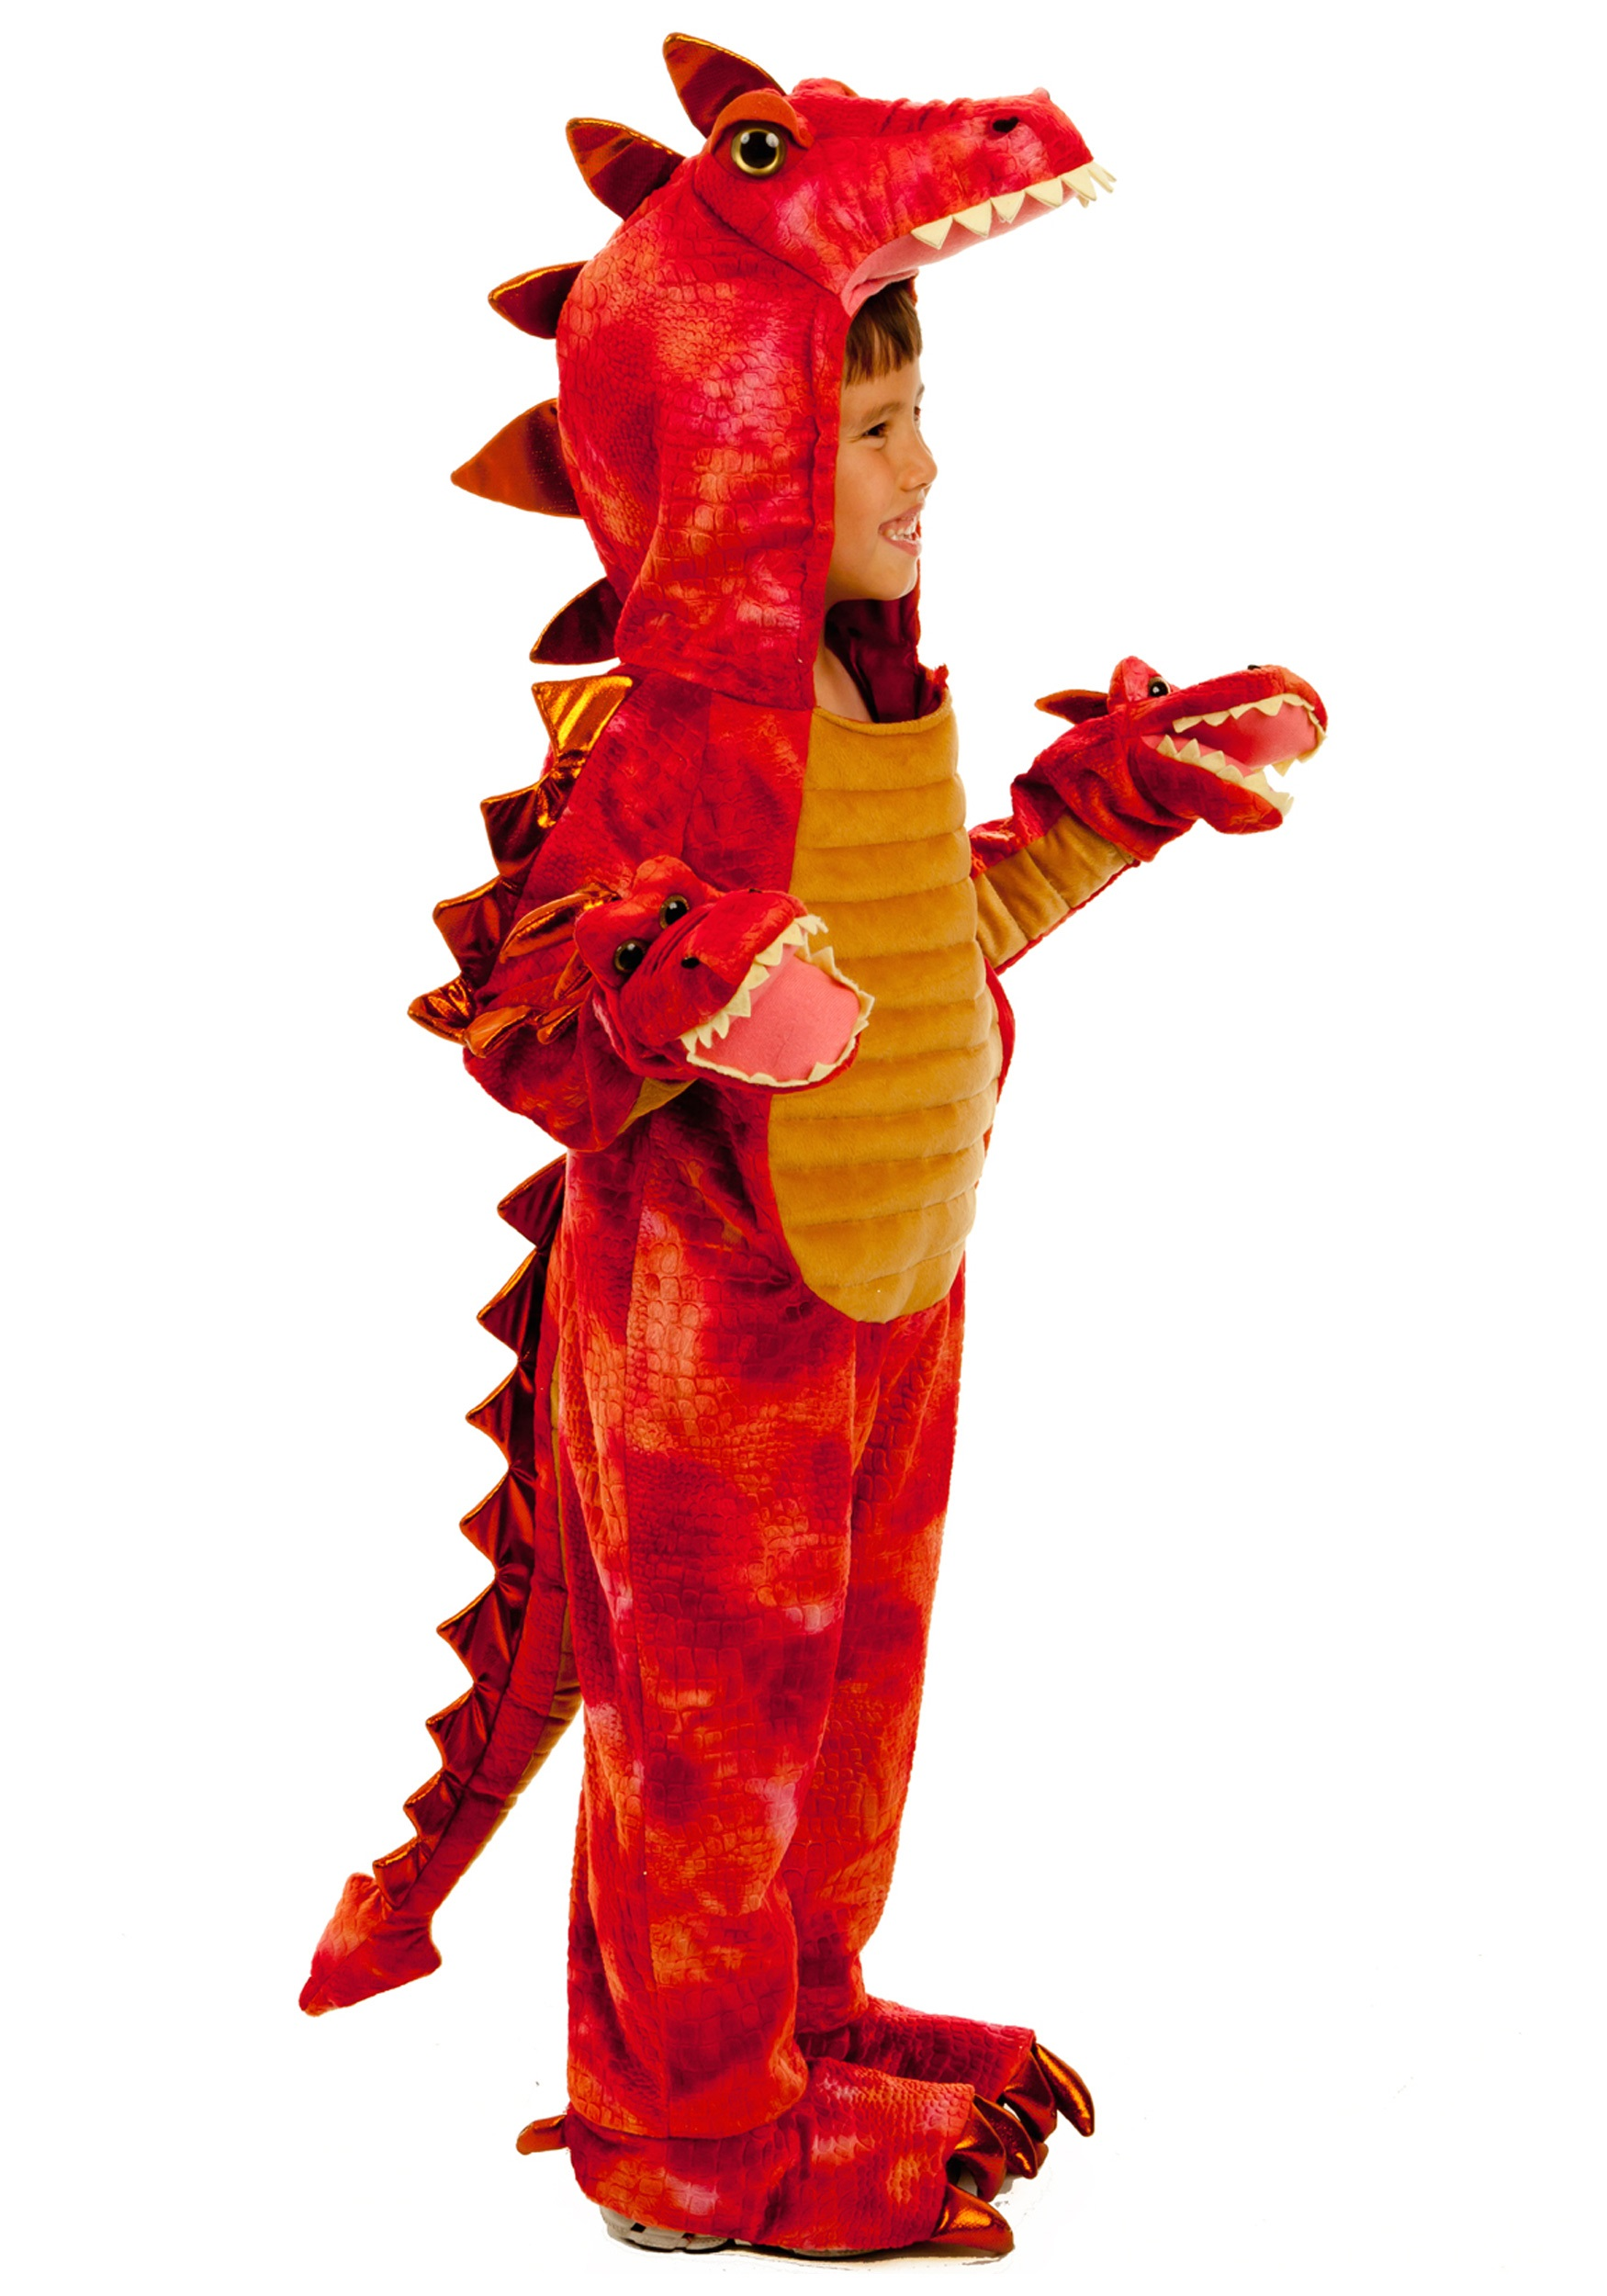 hydra red dragon costume - Dragon Toddler Halloween Costume